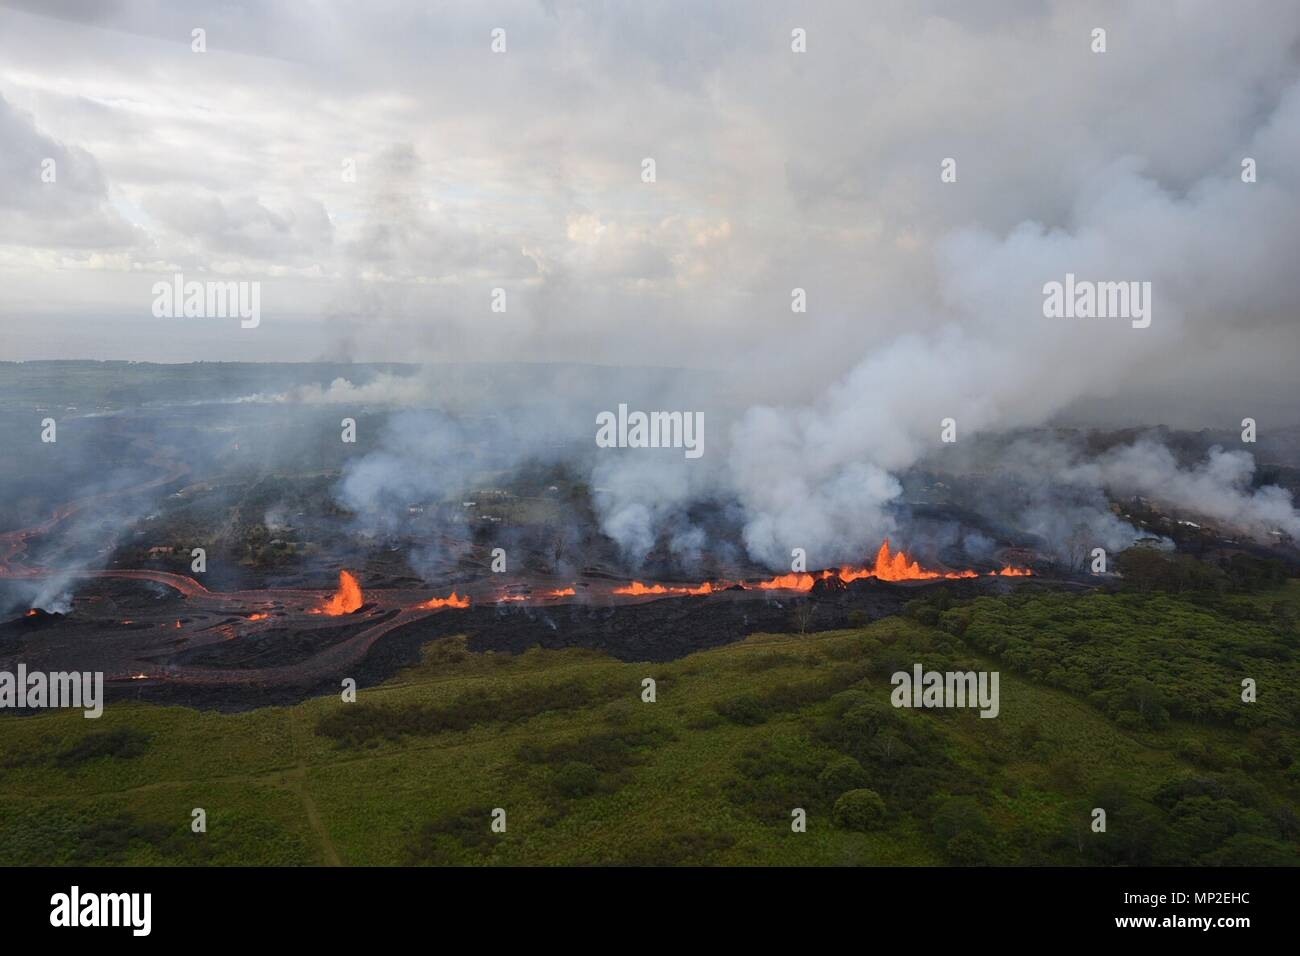 Lava fountains spew from fissure 20 caused by the eruption of the Kilauea volcano May 19, 2018 in Pahoa, Hawaii. Stock Photo